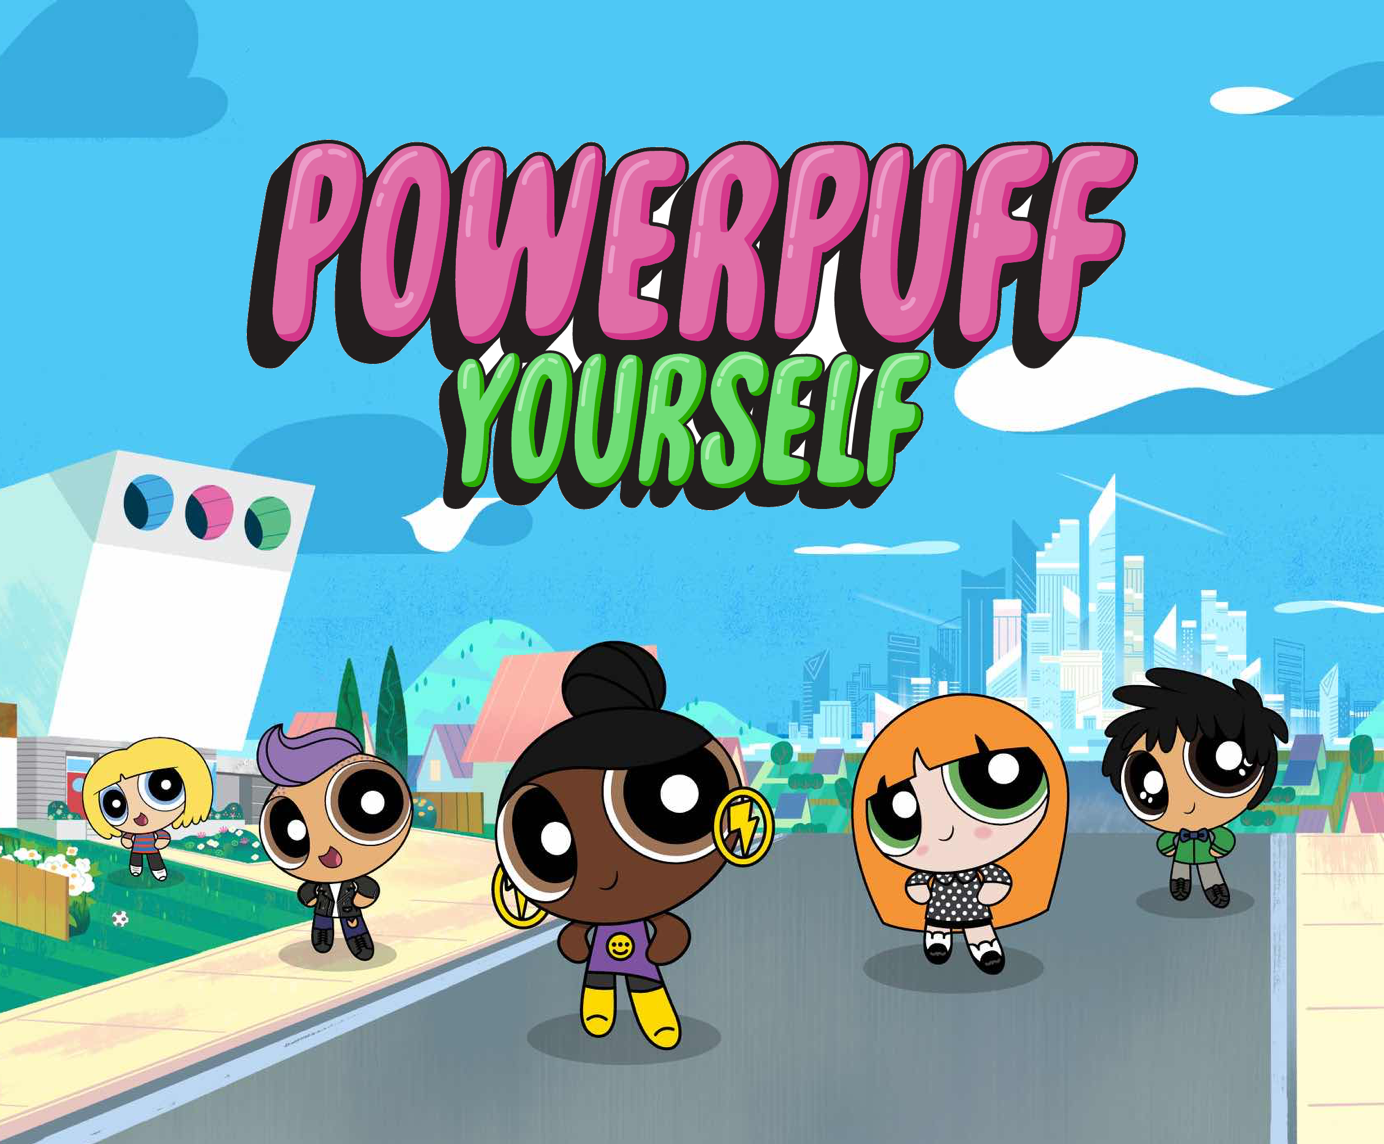 Powerpuff Yourself Such An Amazing Way Of Creeating